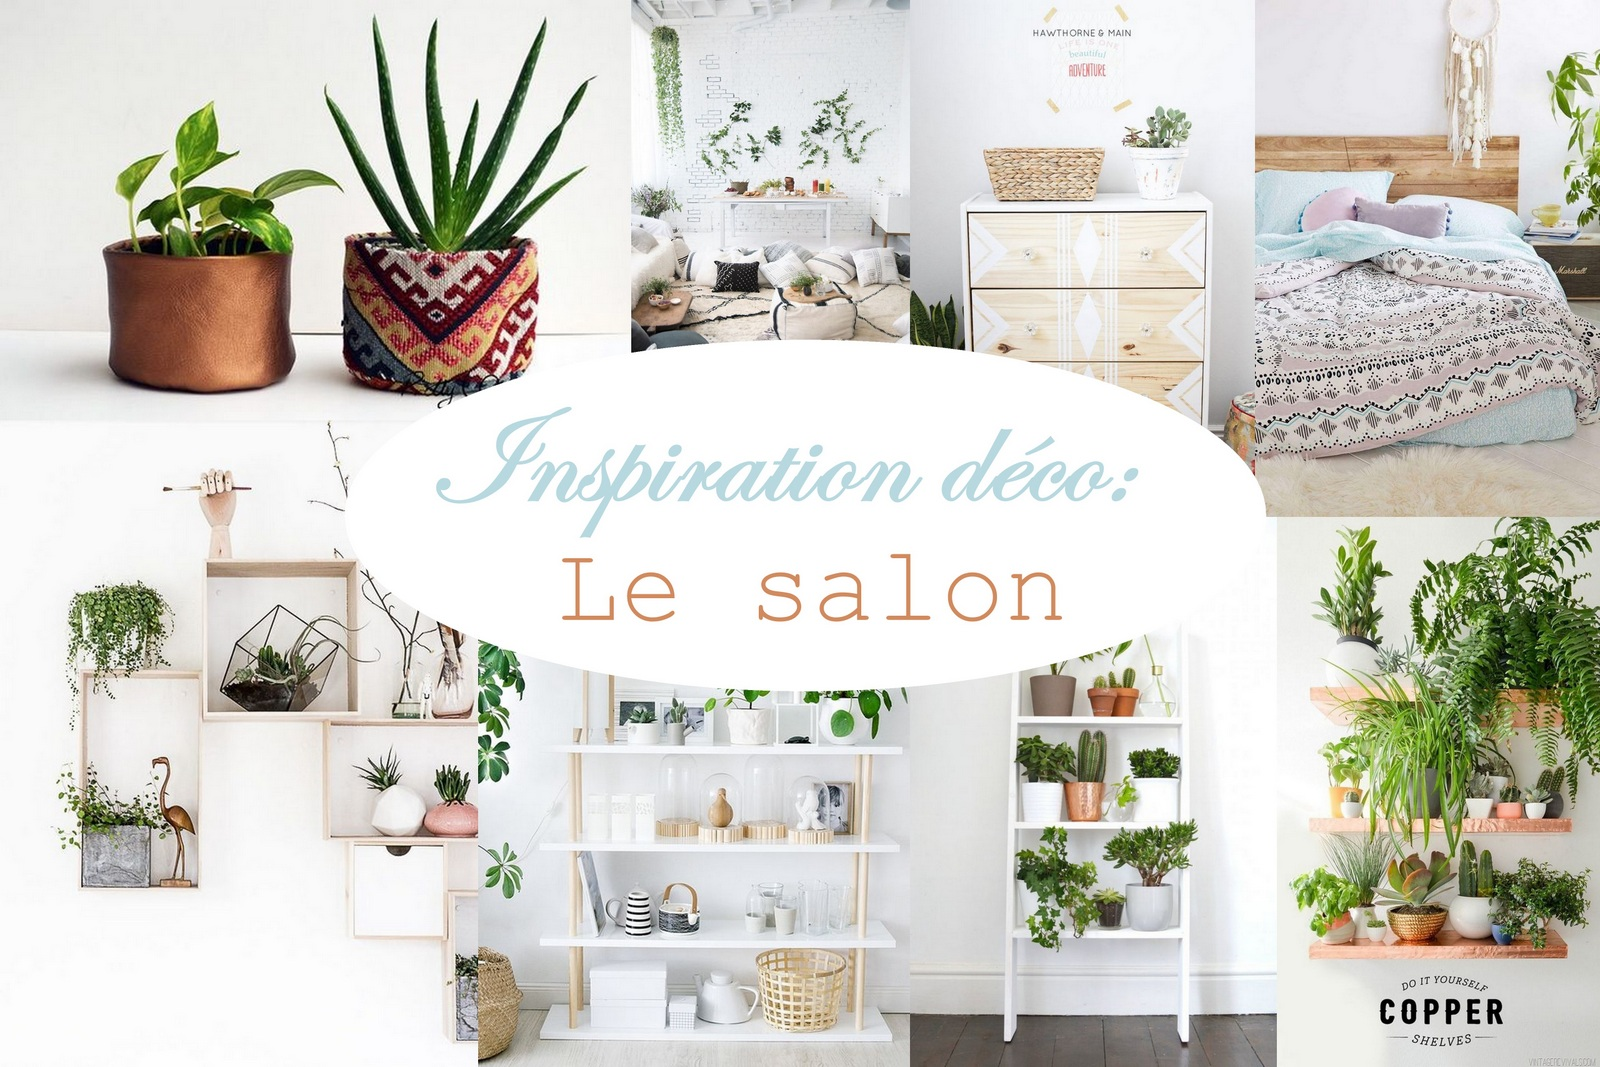 Inspiration d co le salon mon carnet d co diy - Diy deco salon ...